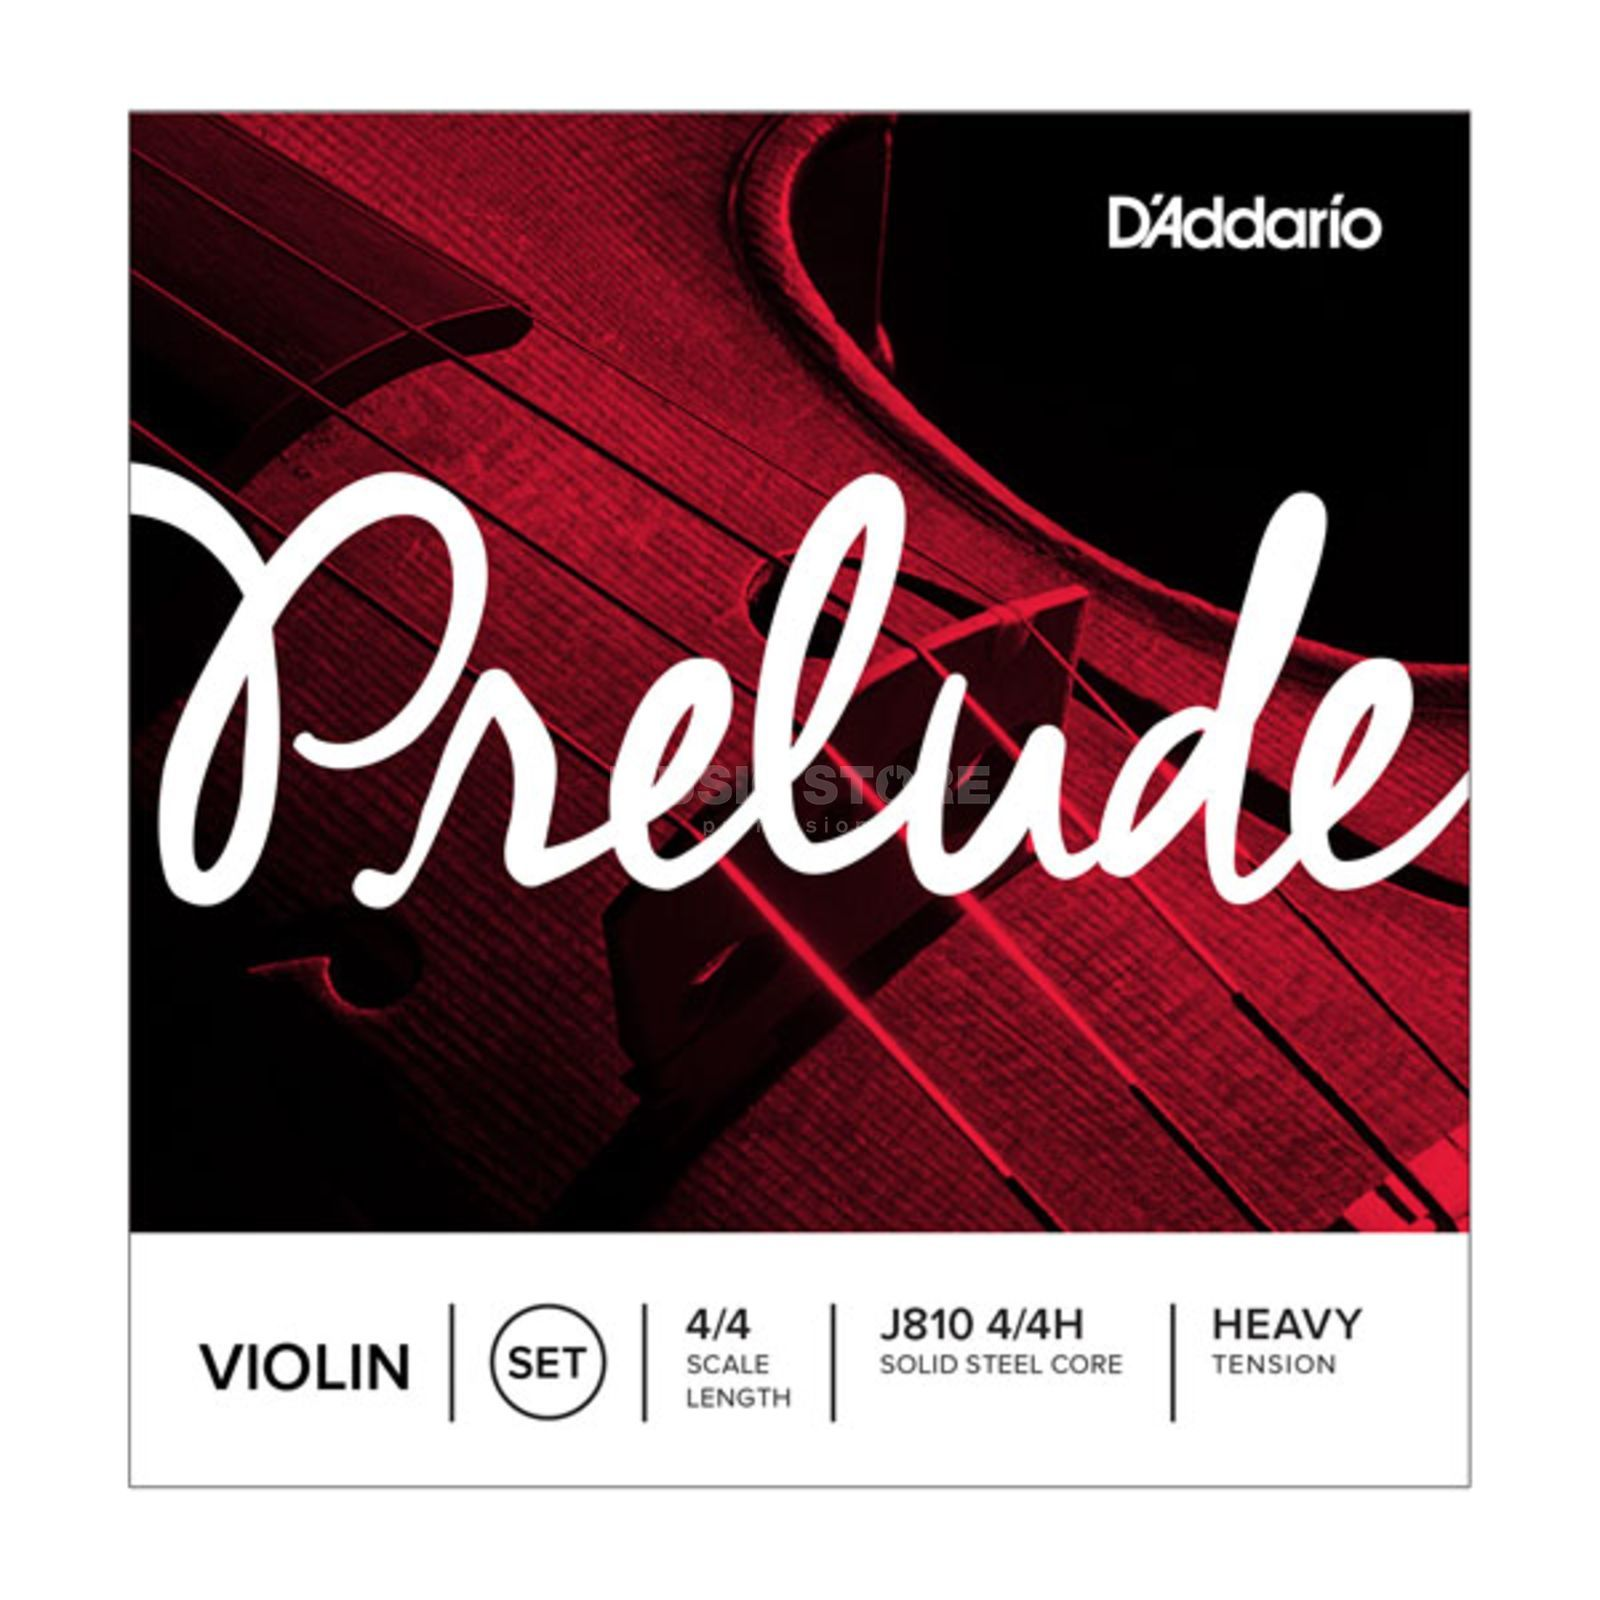 D'Addario Orchestral Violin String Prelude J810-4/4 Heavy Tension Product Image